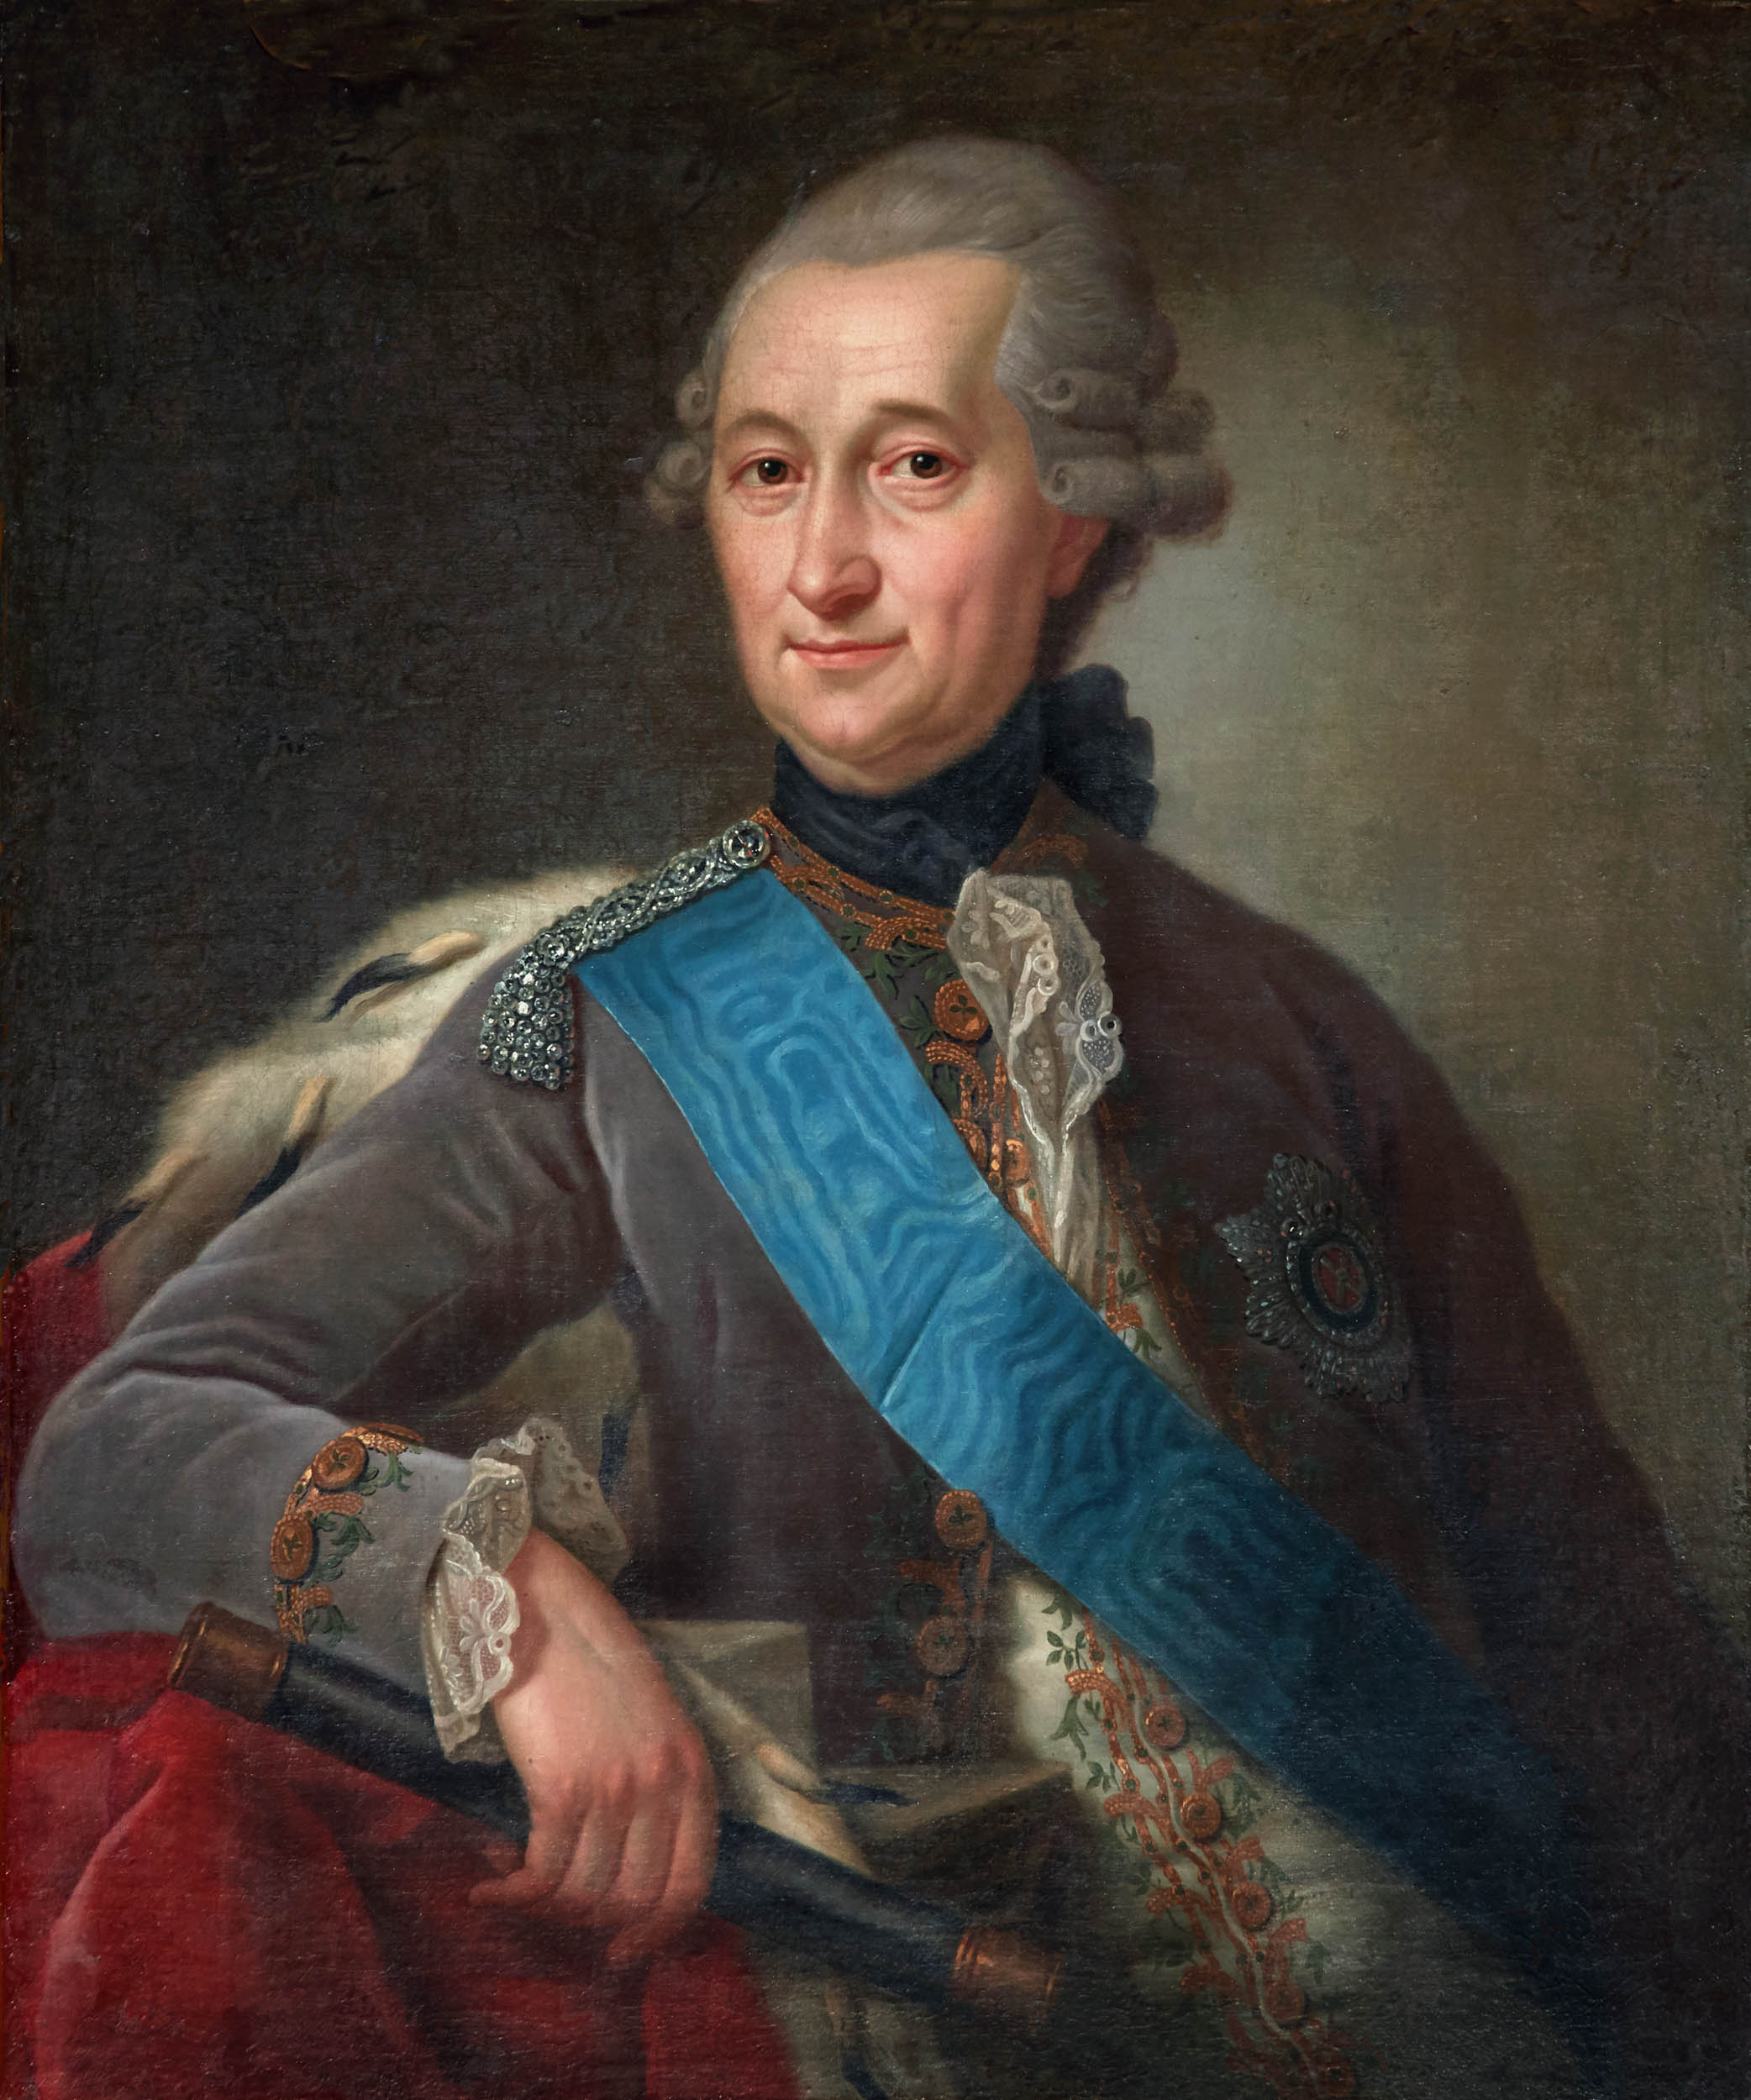 https://upload.wikimedia.org/wikipedia/commons/a/ac/Peter_von_Biron.PNG